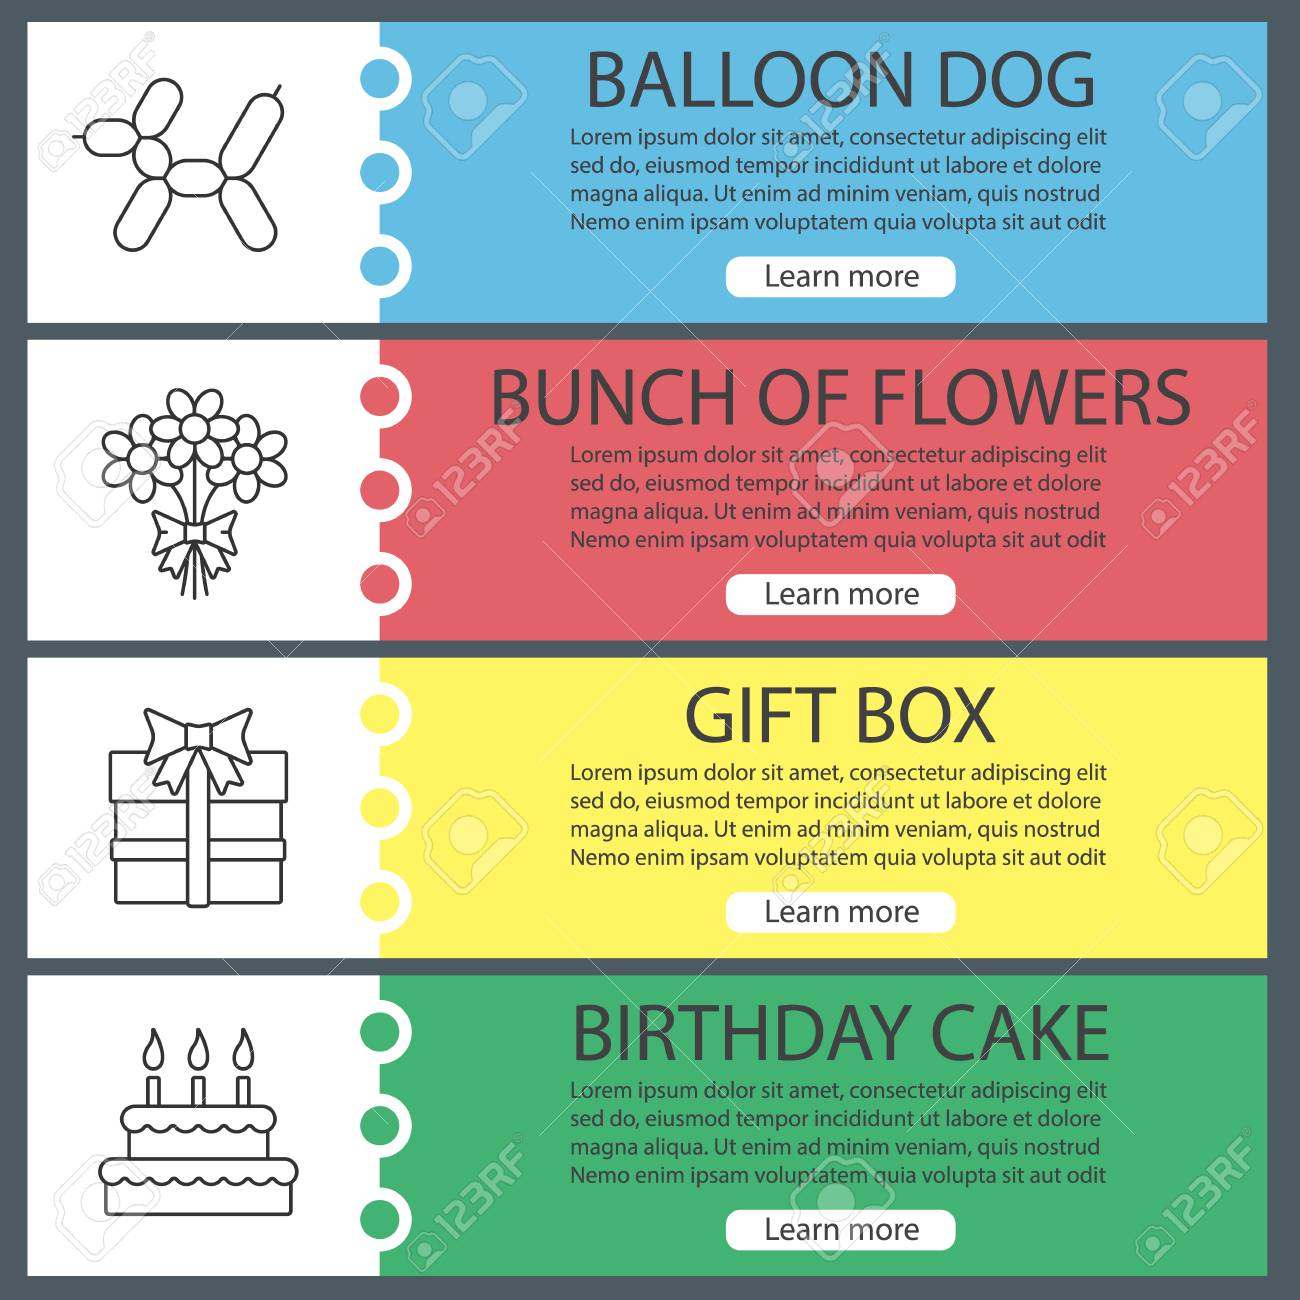 Vector Headers Design Concepts Party Accessories Web Banner Templates Set Balloon Dog Bunch Of Flowers Gift Box